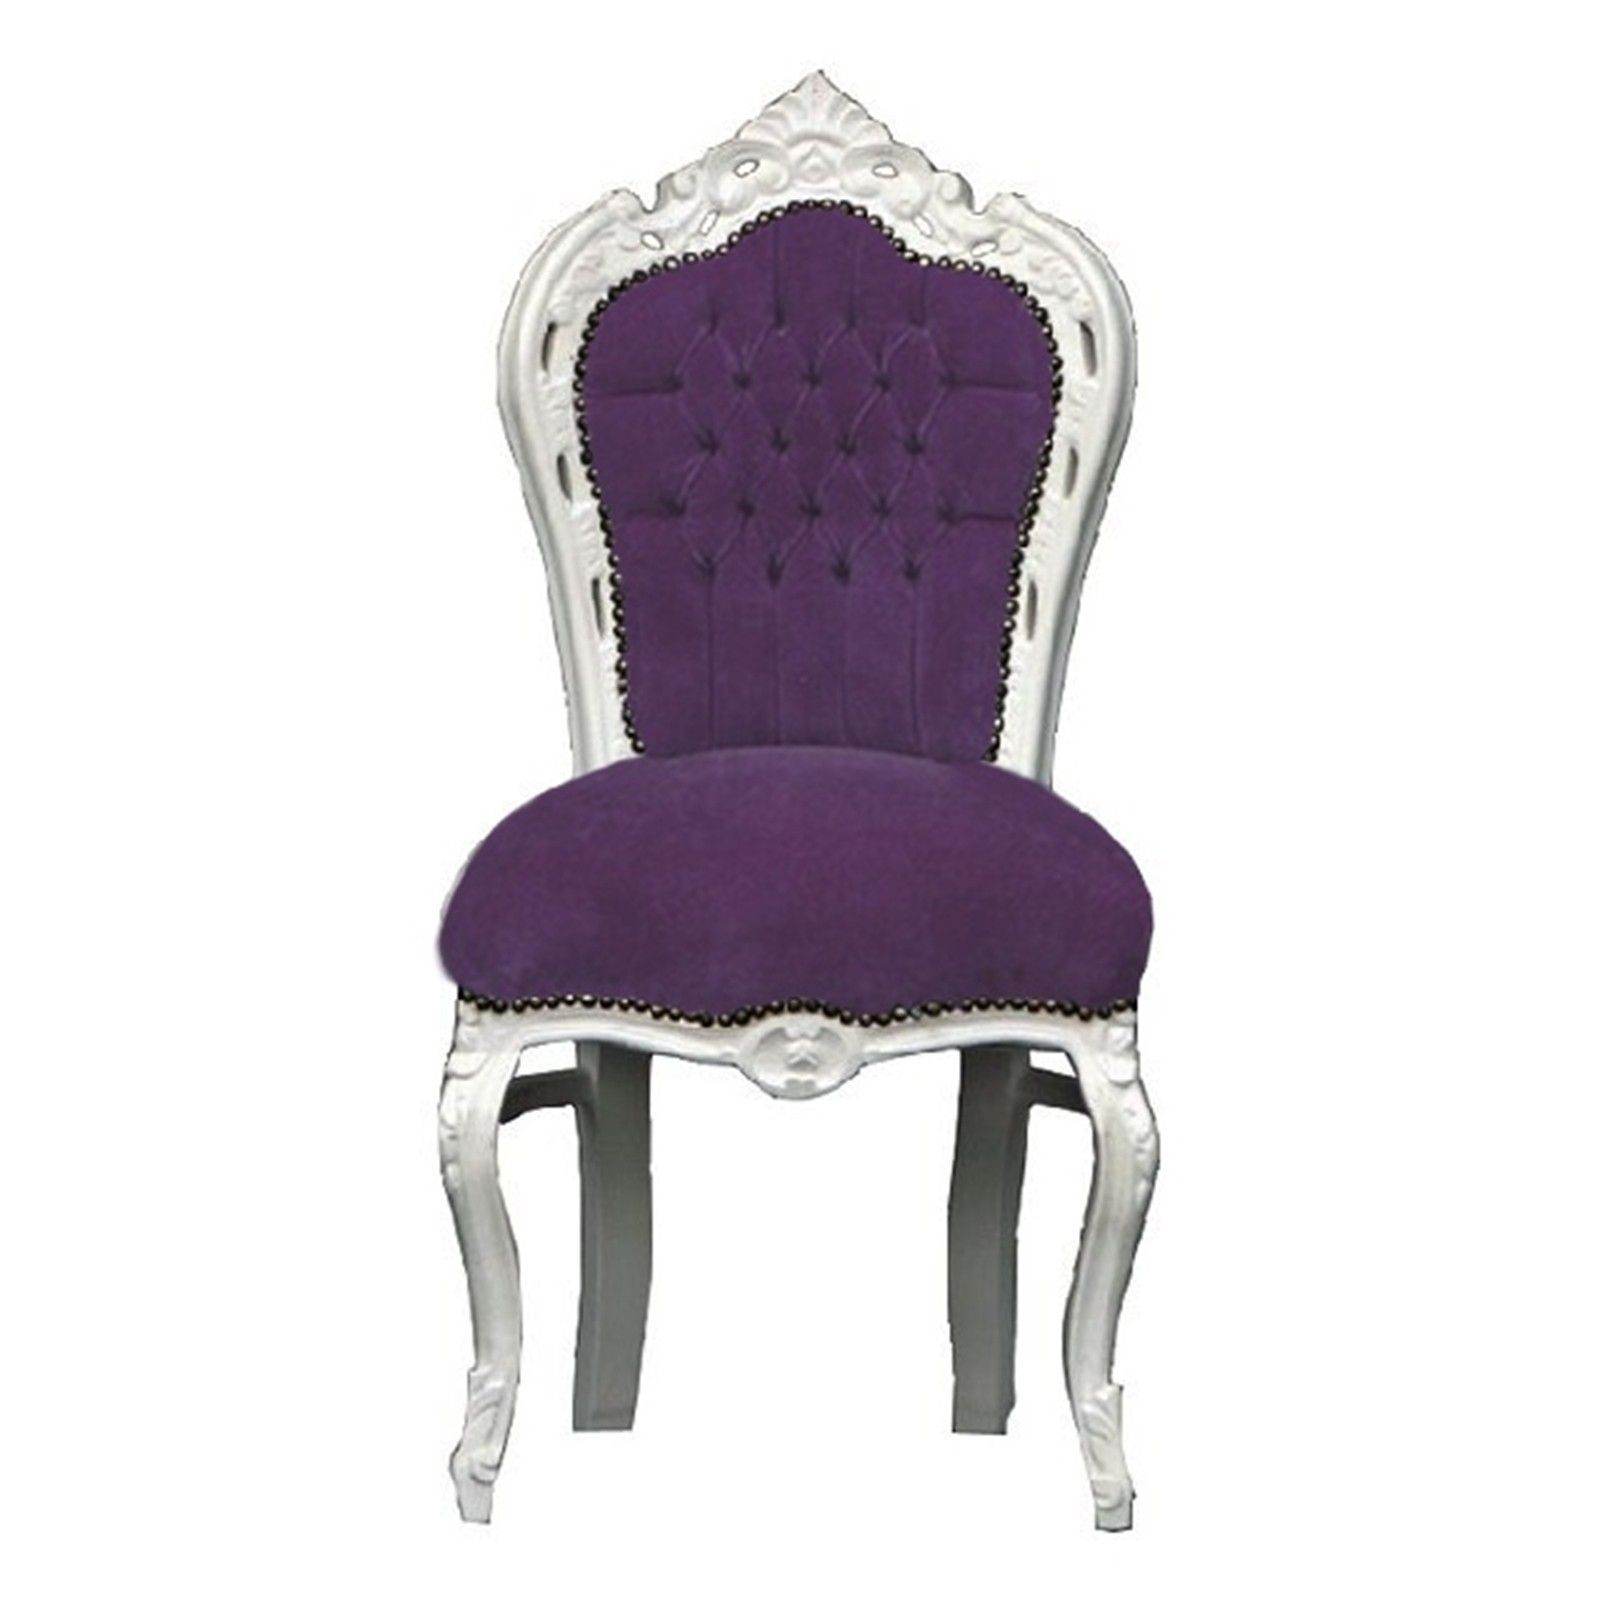 Purple Velvet Desk Chair  sc 1 st  Pinterest & Purple Velvet Desk Chair | http://devintavern.com | Pinterest | Desks